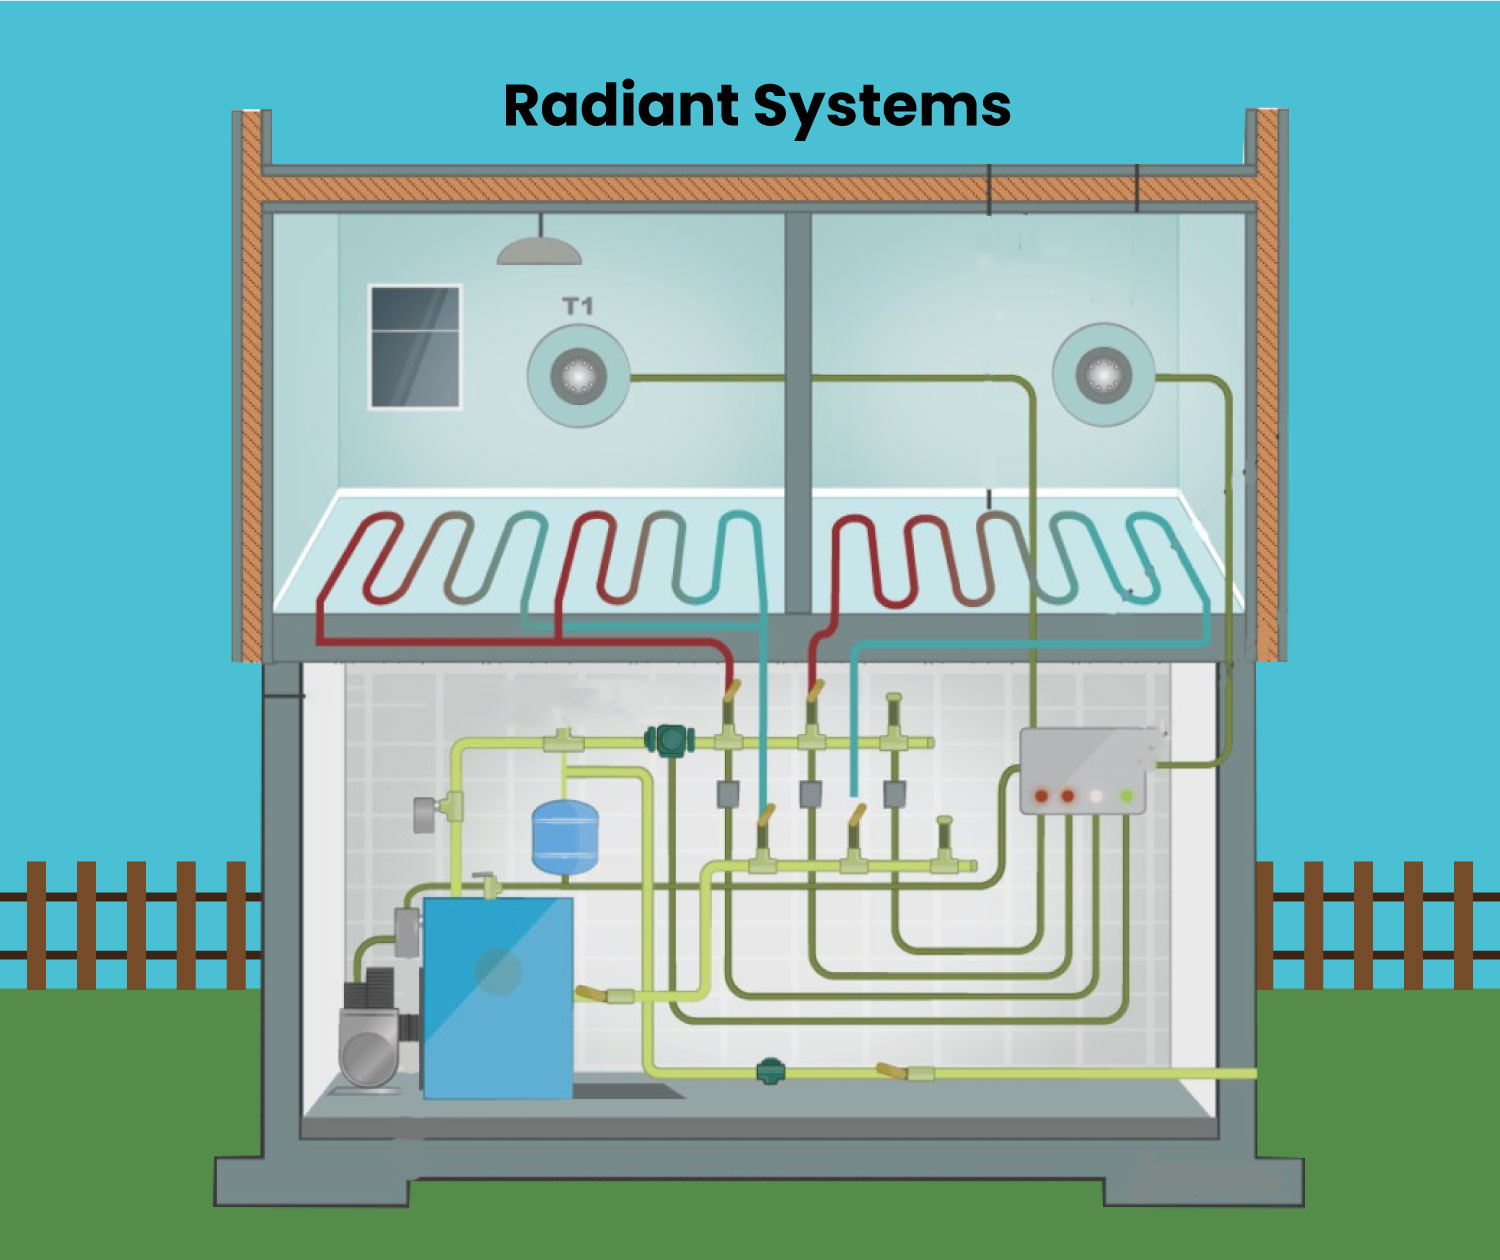 Radiant system in a residential home.